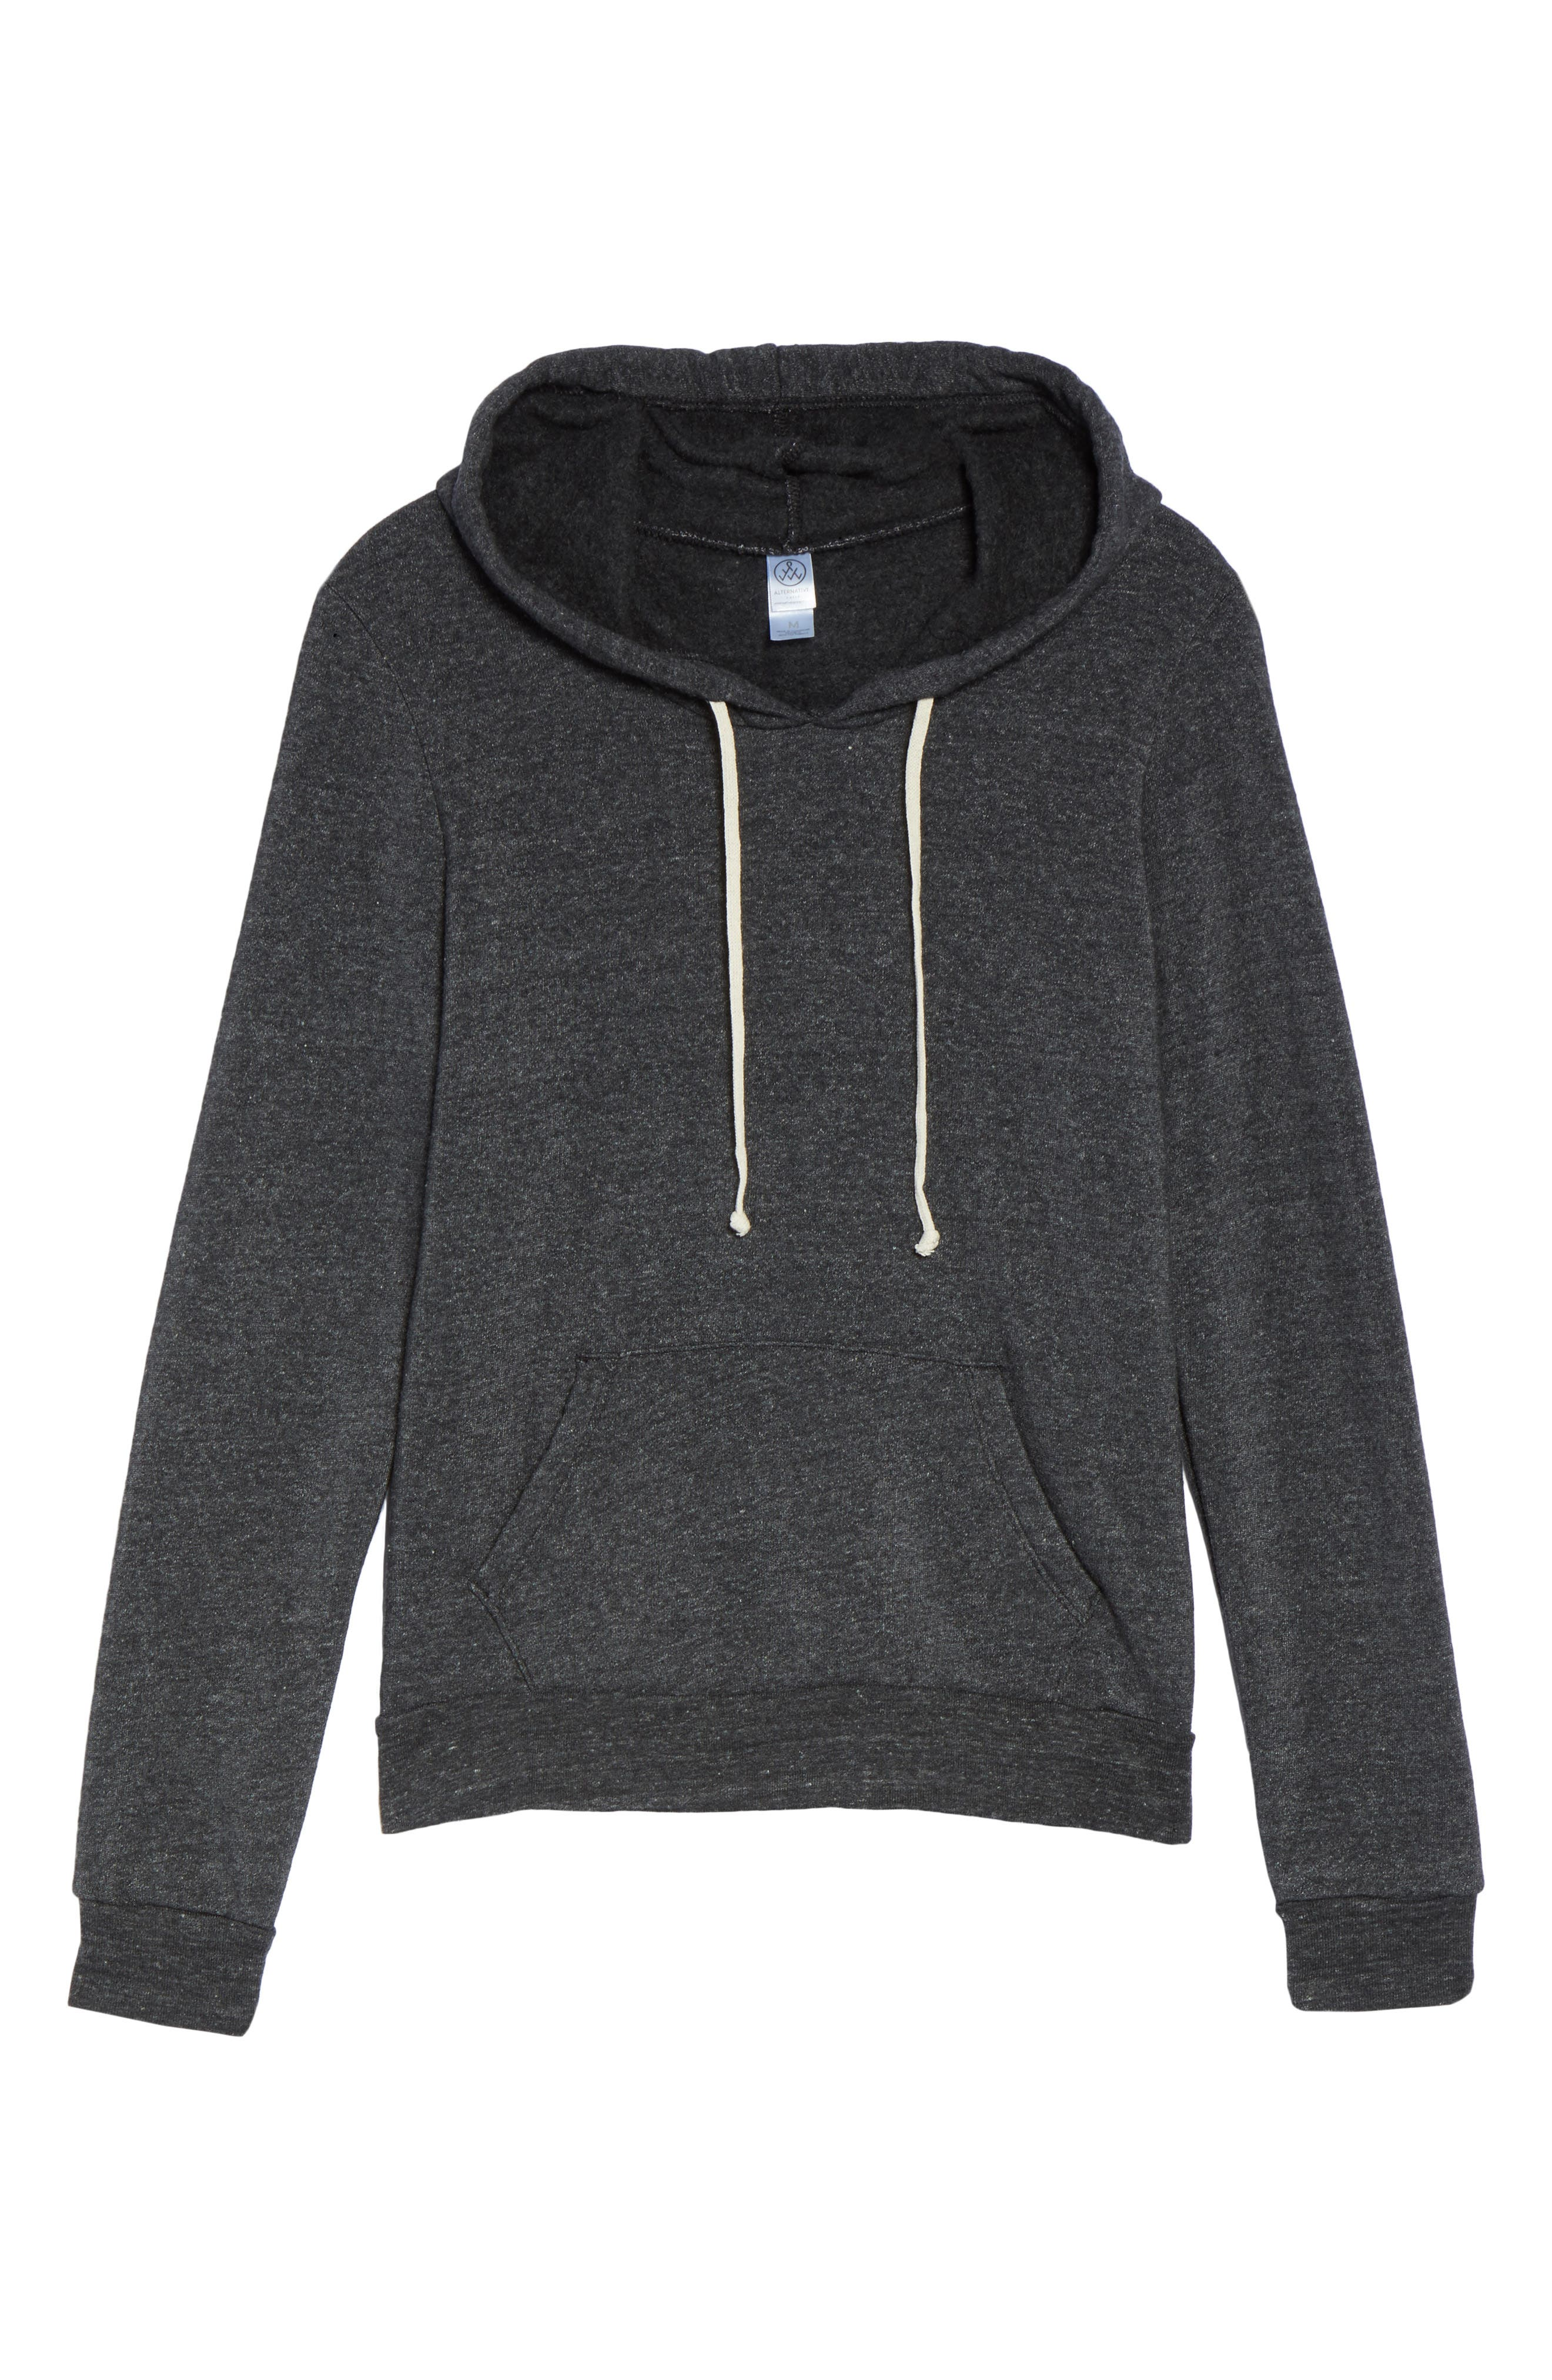 Athletics Pullover Hoodie,                             Alternate thumbnail 6, color,                             009